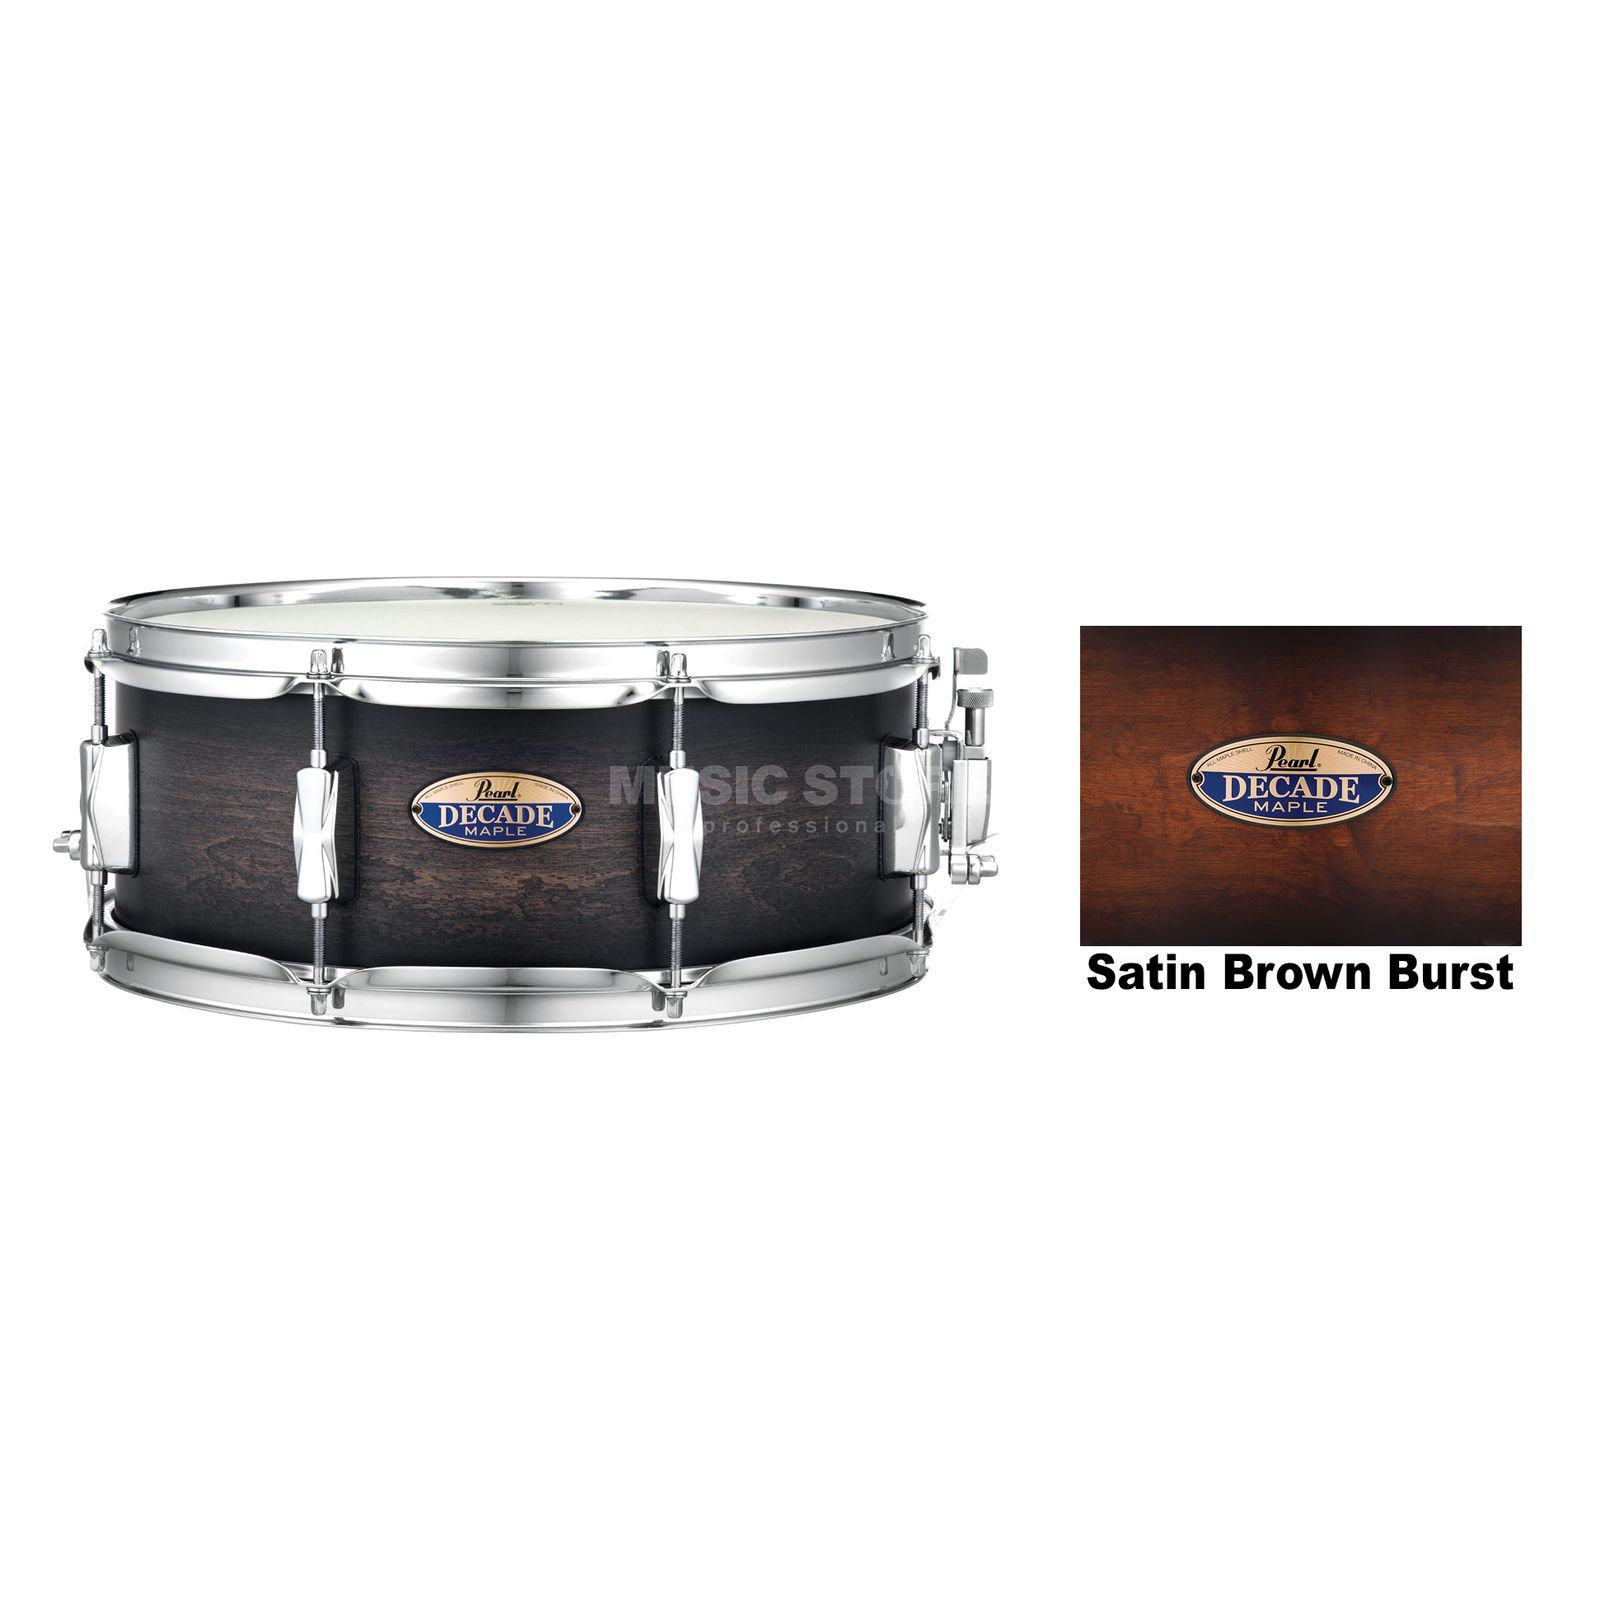 "Pearl Decade Maple Snare 14""x5,5"", Satin Brown Burst #260 Product Image"